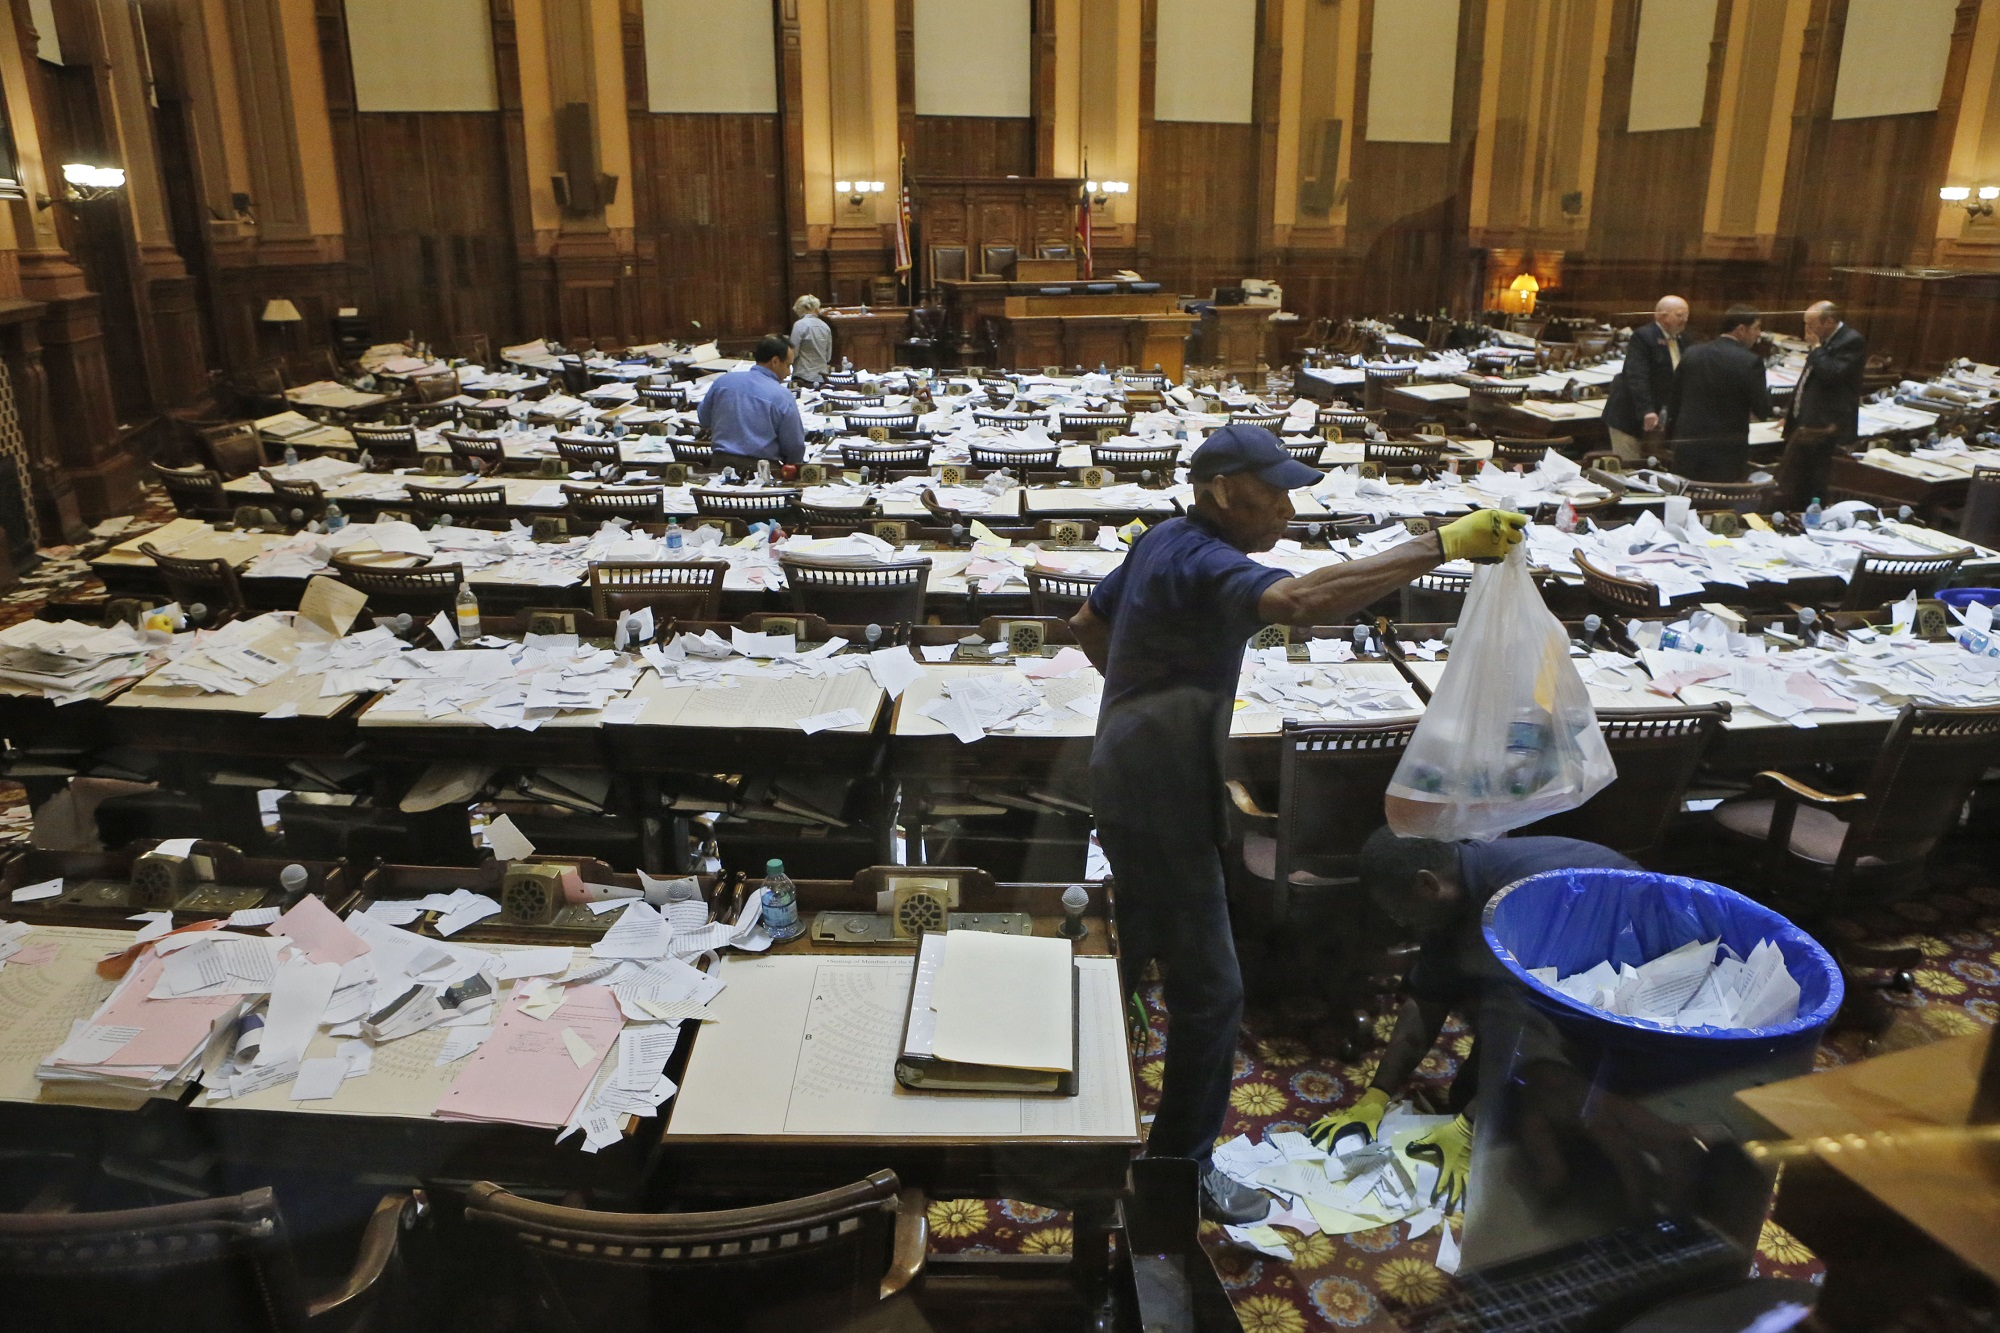 Workers clean up after the House adjourned for 2015 Legislative session. Photo by Bob Andres / AJC